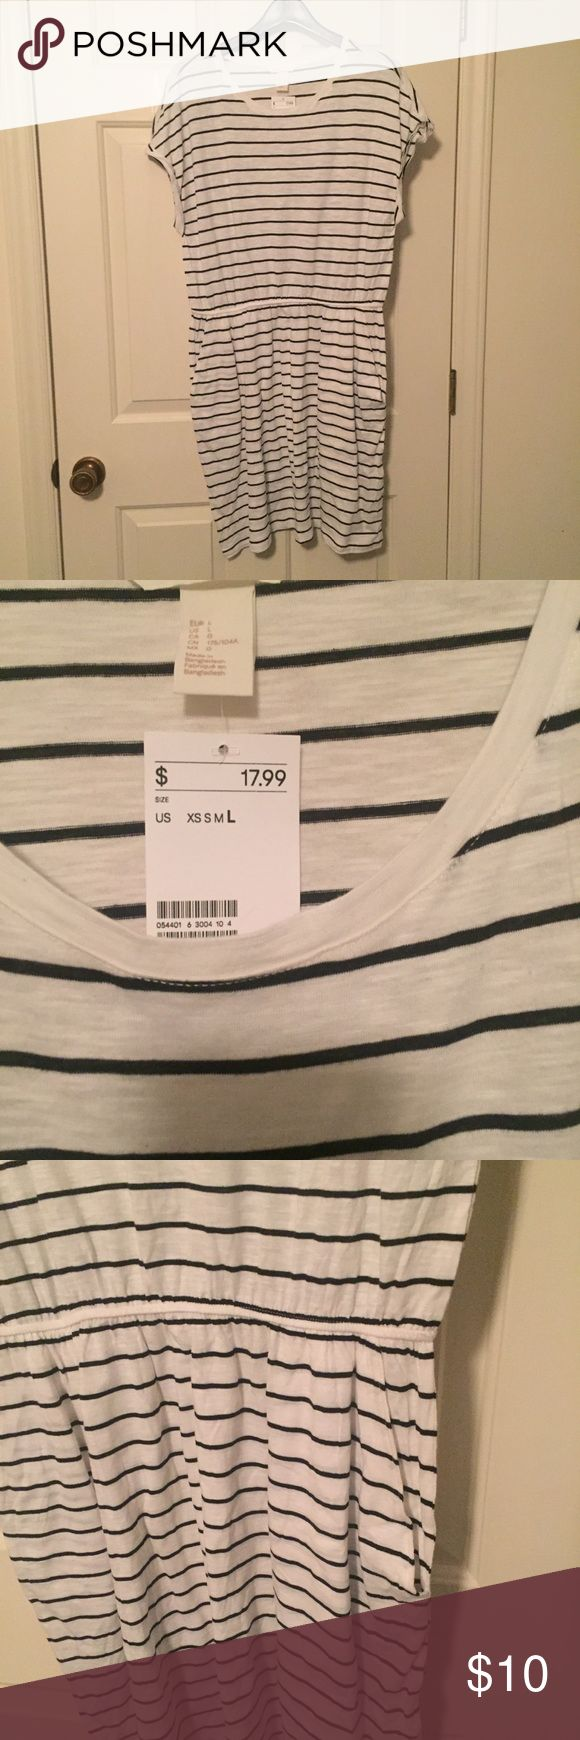 Casual Dress w/ Pockets Off white/Navy striped dress with pockets. Comfy. Casual. NWT. H&M Dresses Mini